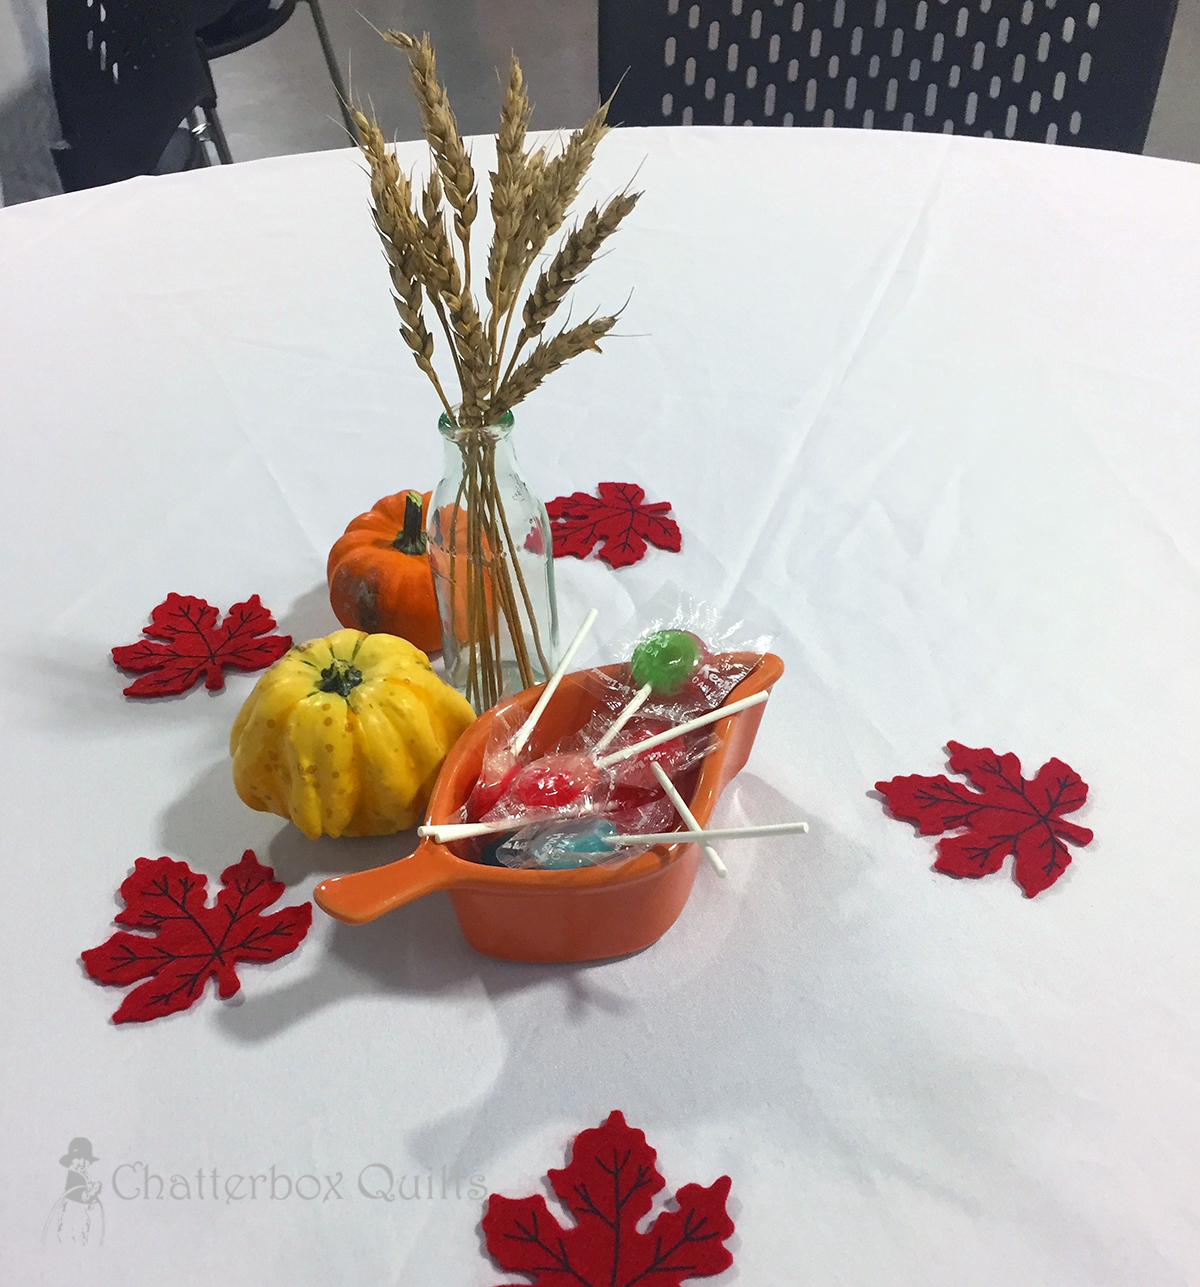 Table decorations at the Creative Expressions quilt show